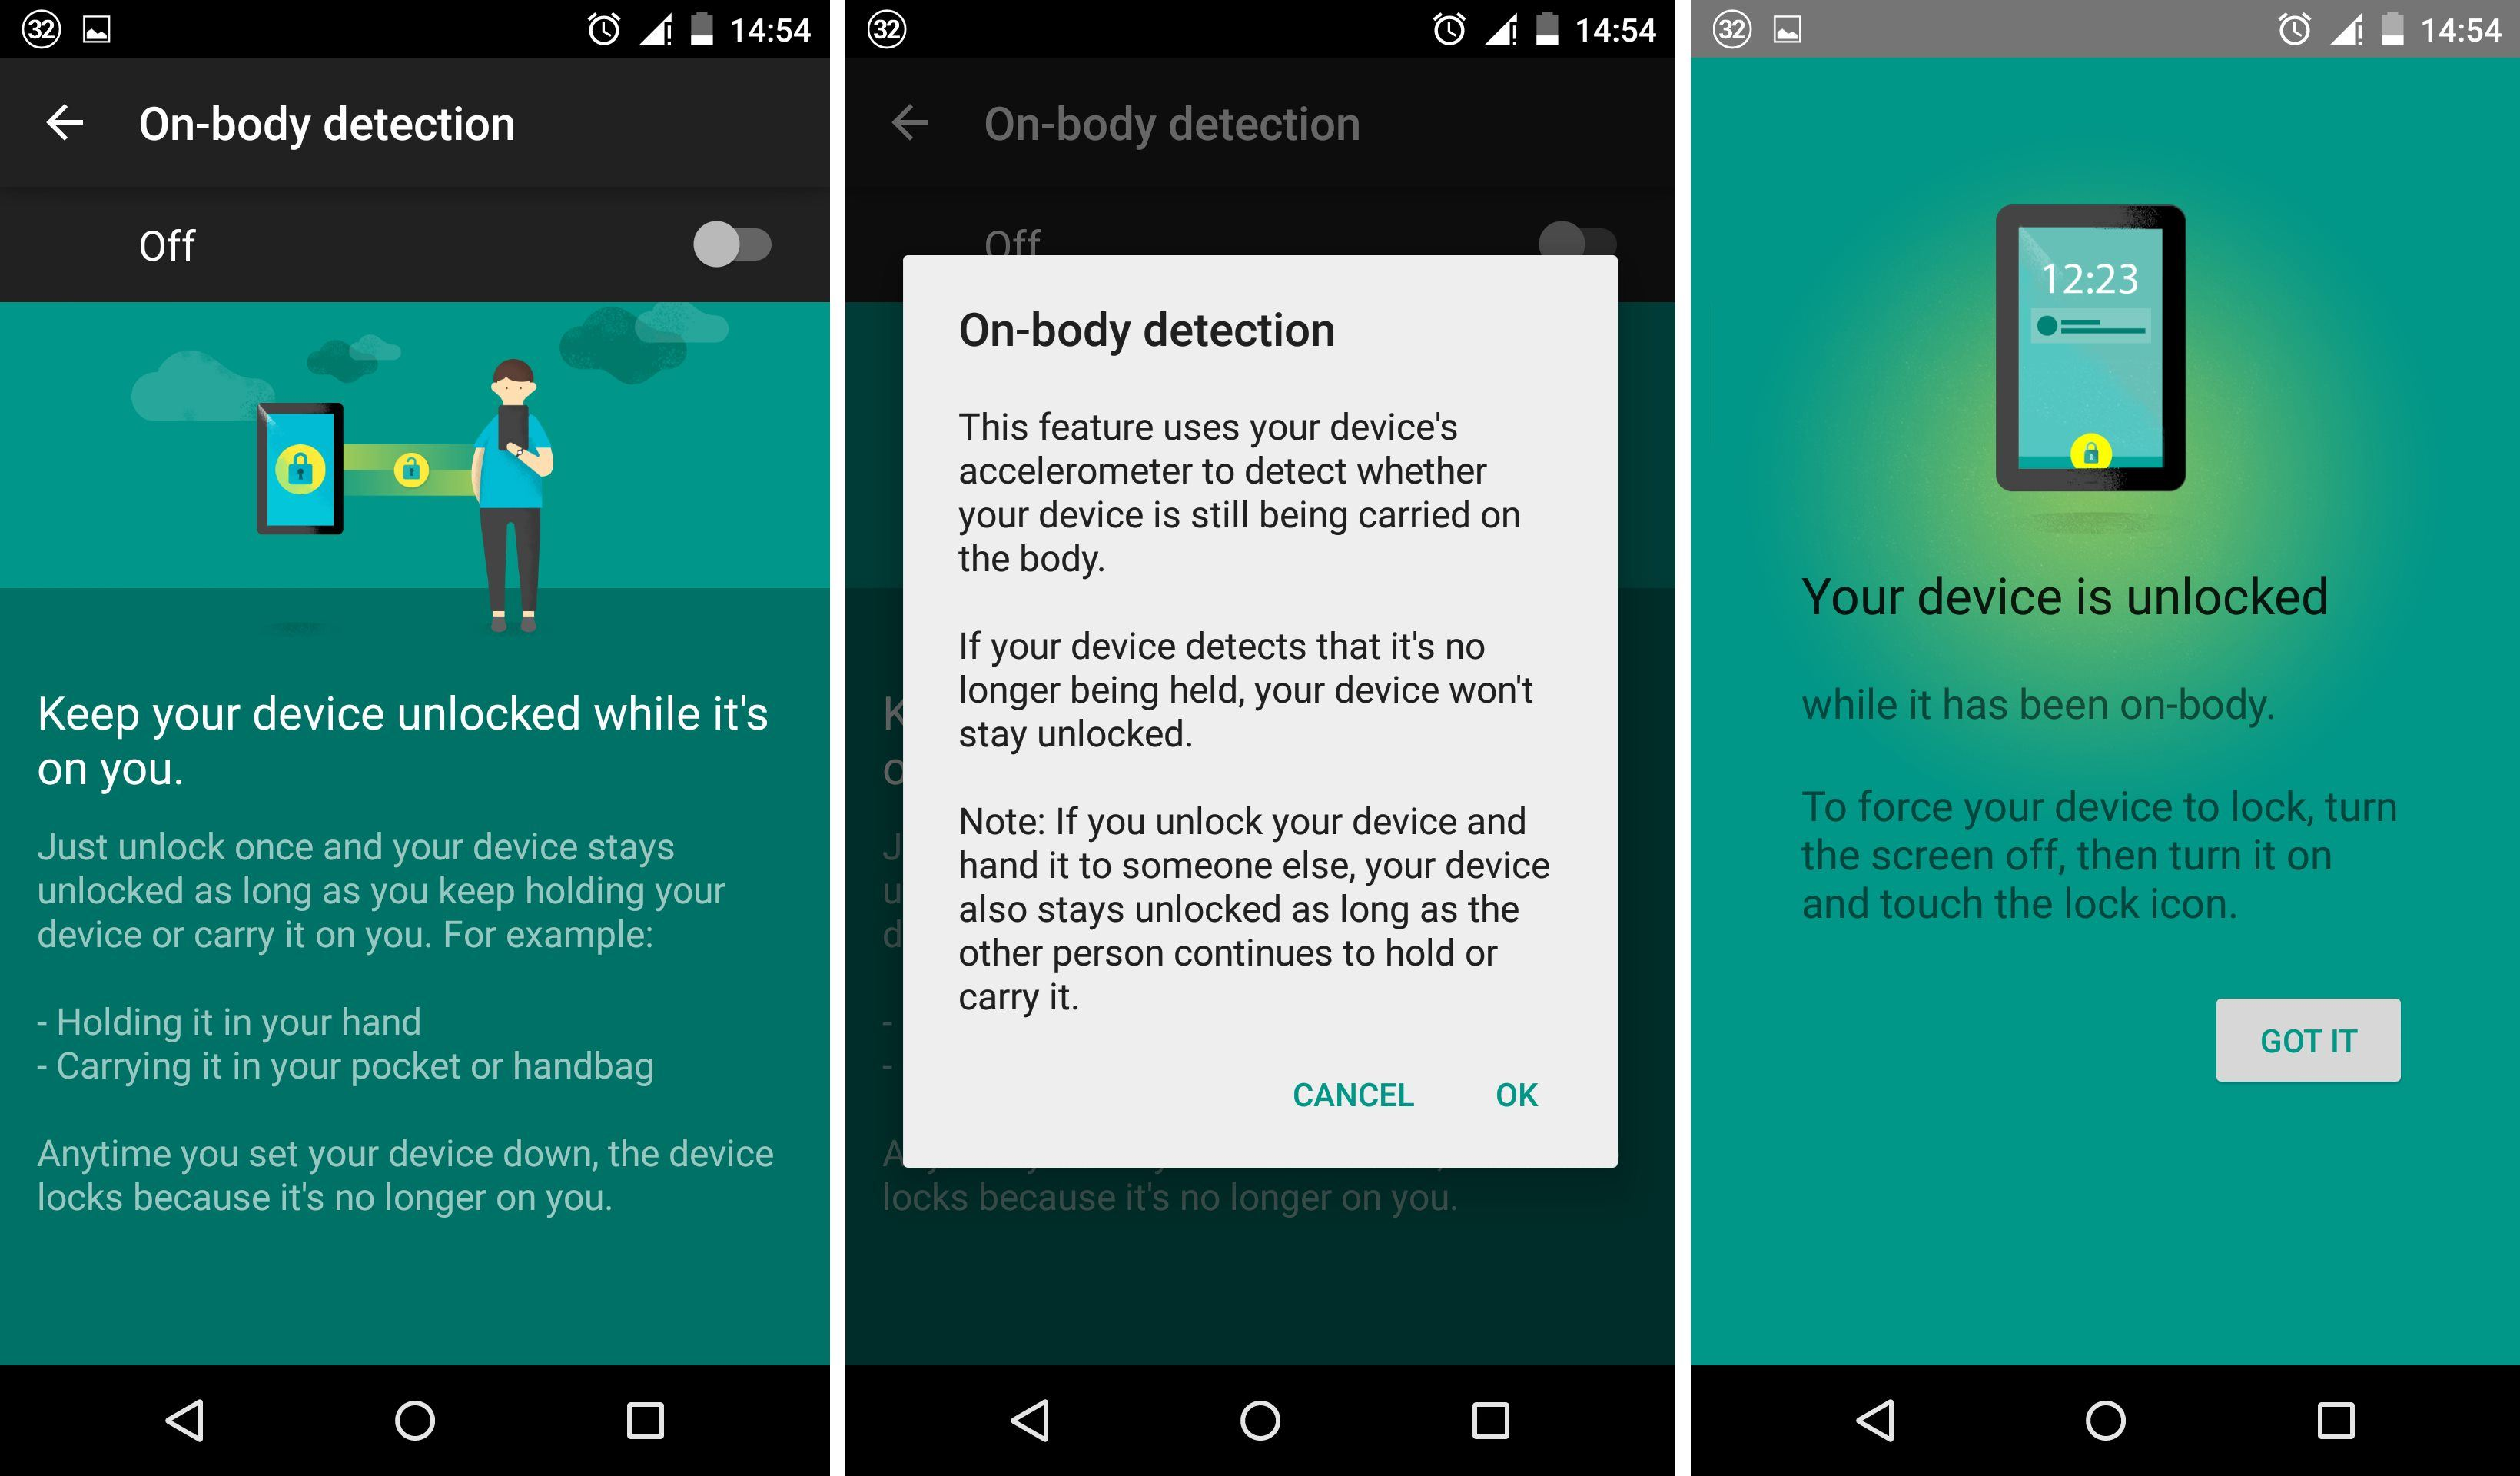 on-body detection 1